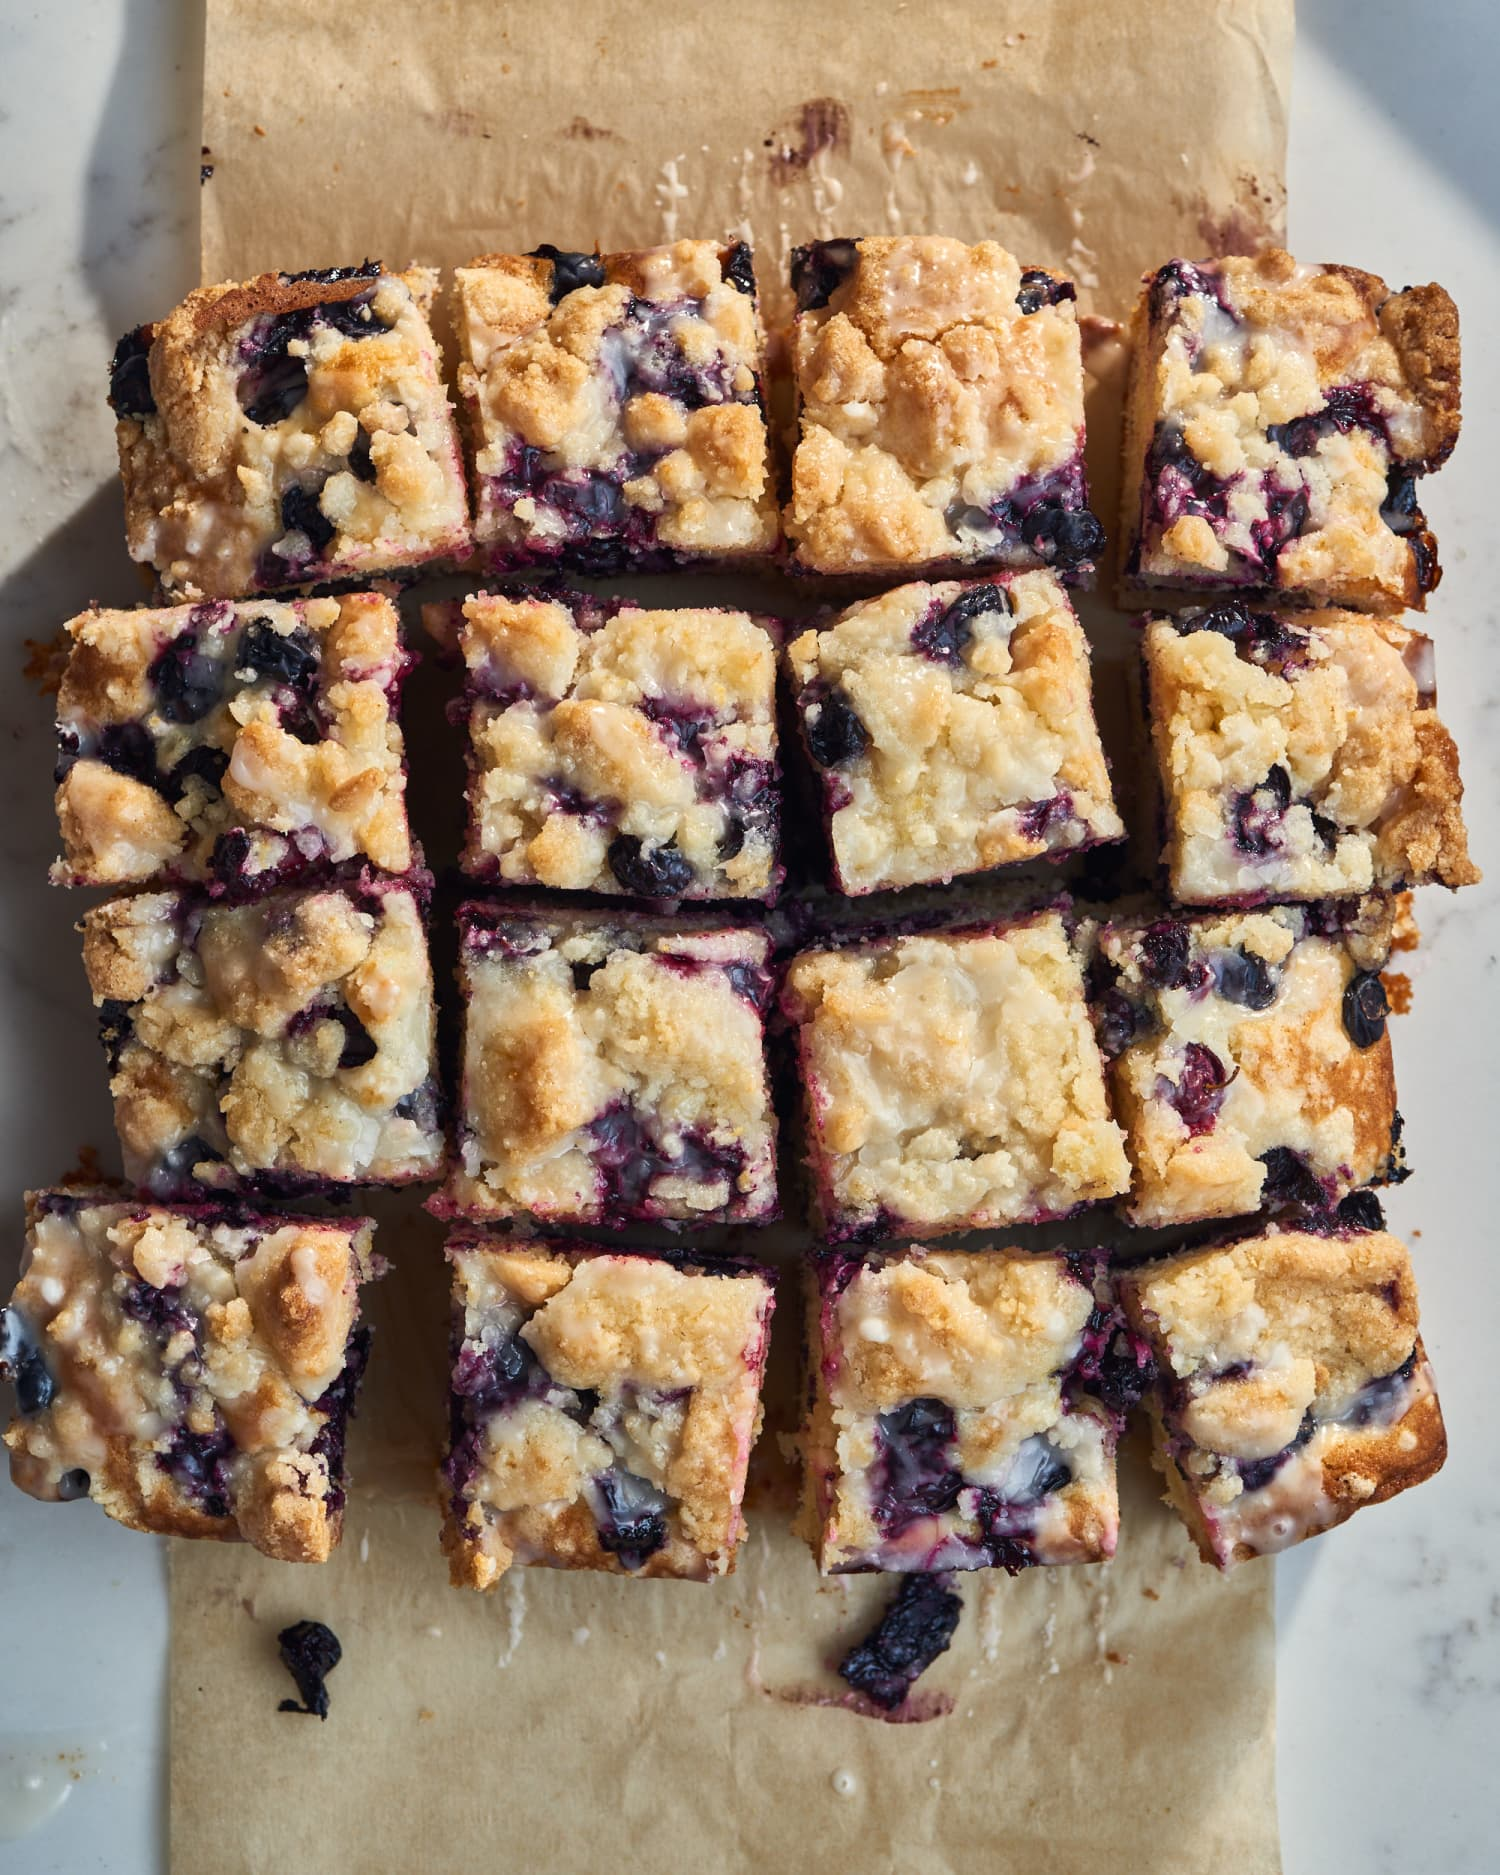 Forget Coffee Cake: This Classic Blueberry Buckle Is the Breakfast Cake You Need